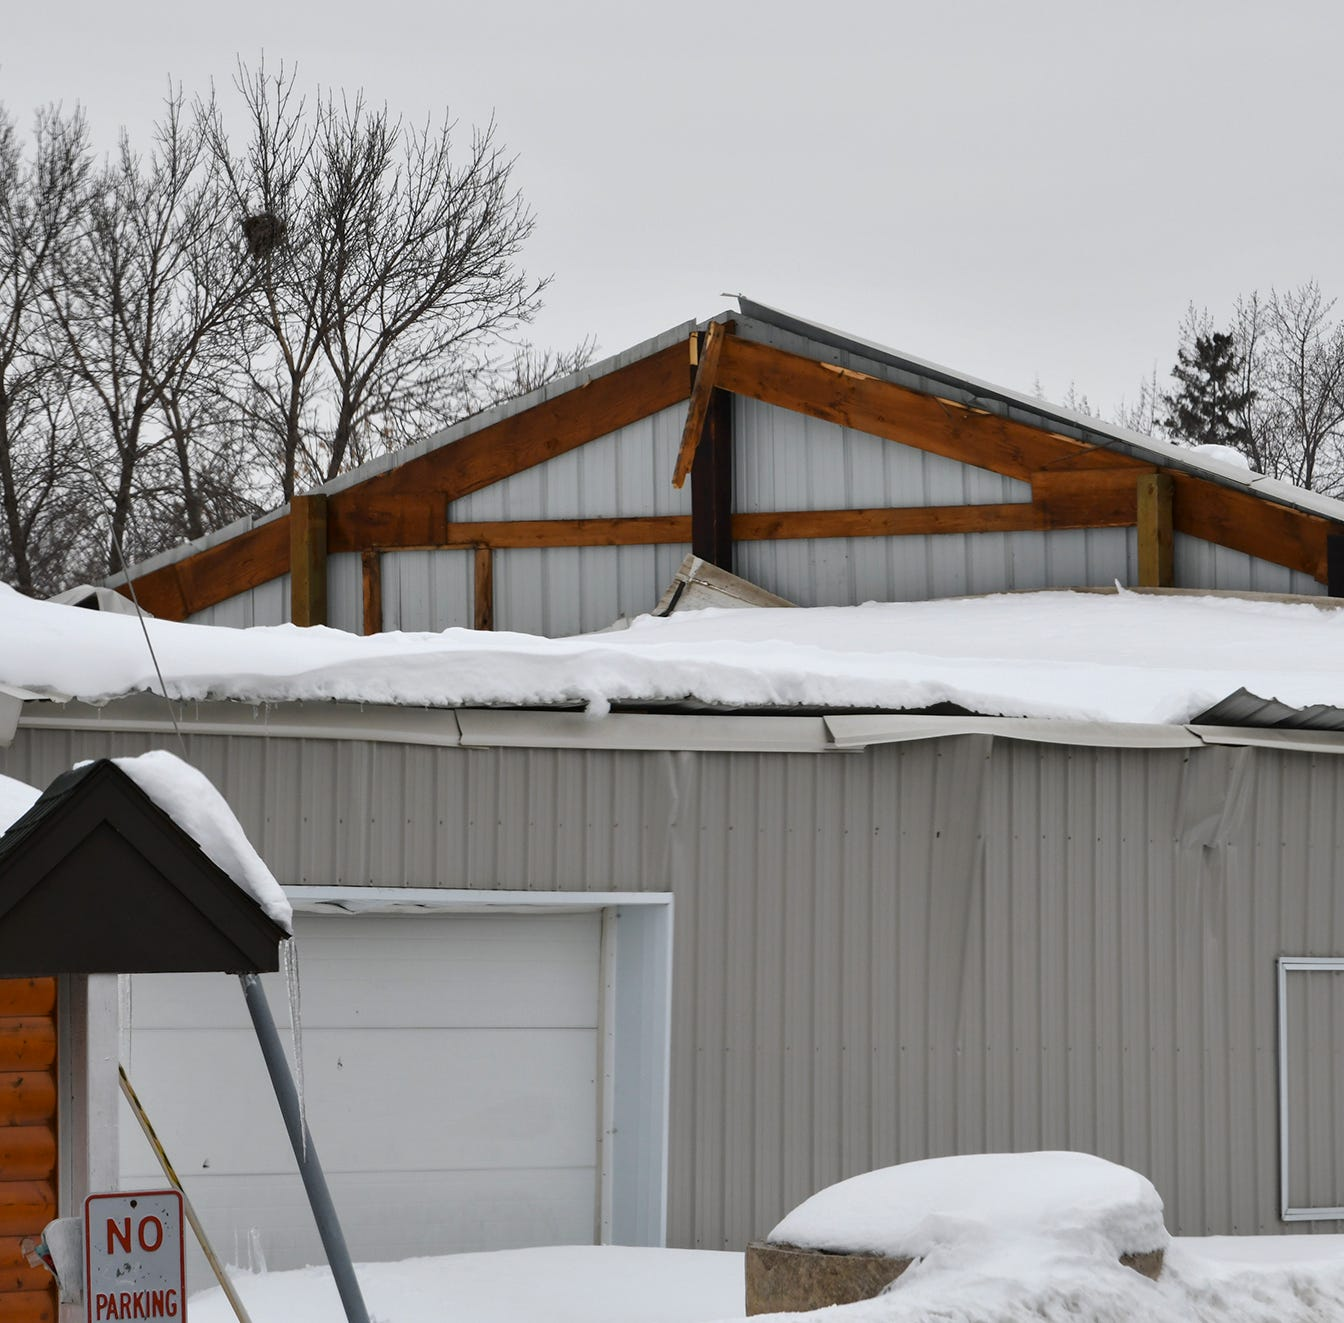 Roof of Lions Club building at Benton County Fairgrounds caves in